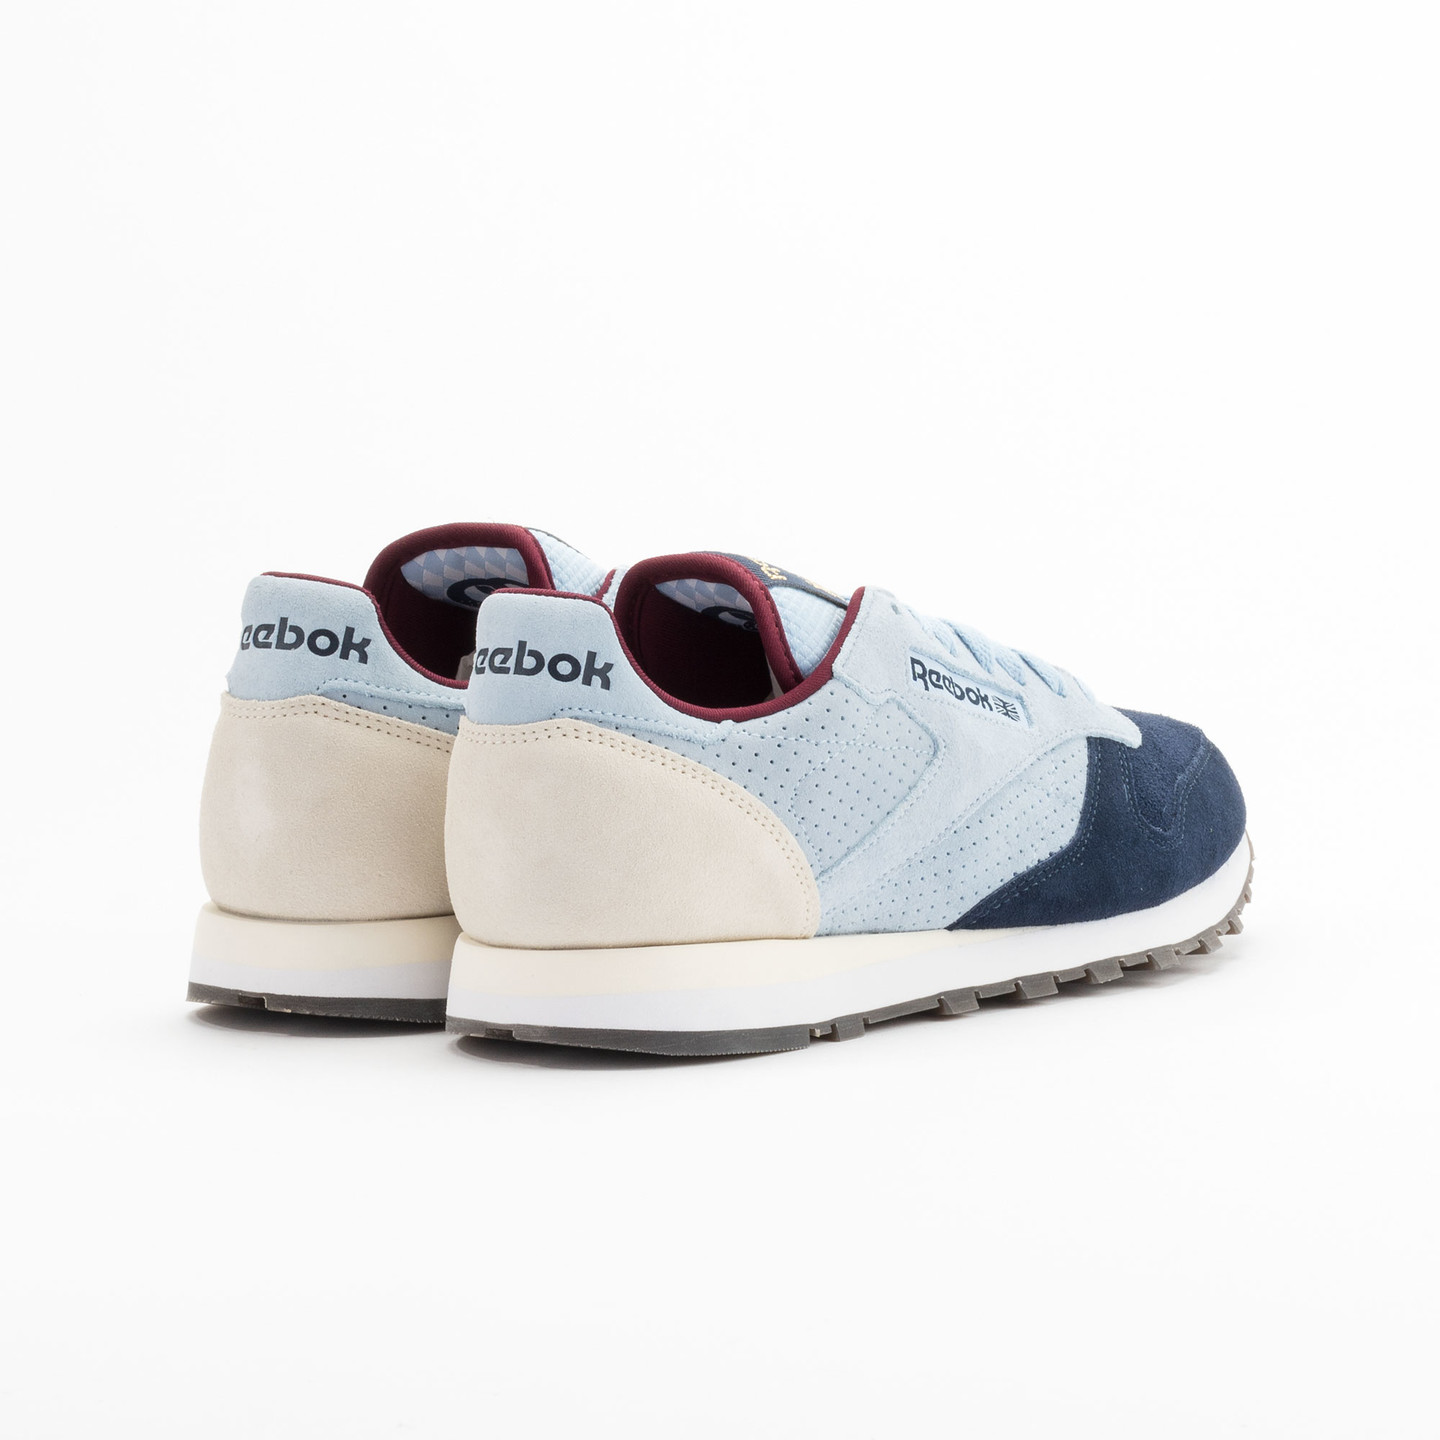 Reebok Classic Leather Int Navy / Light Blue / Sand V66829-45.5